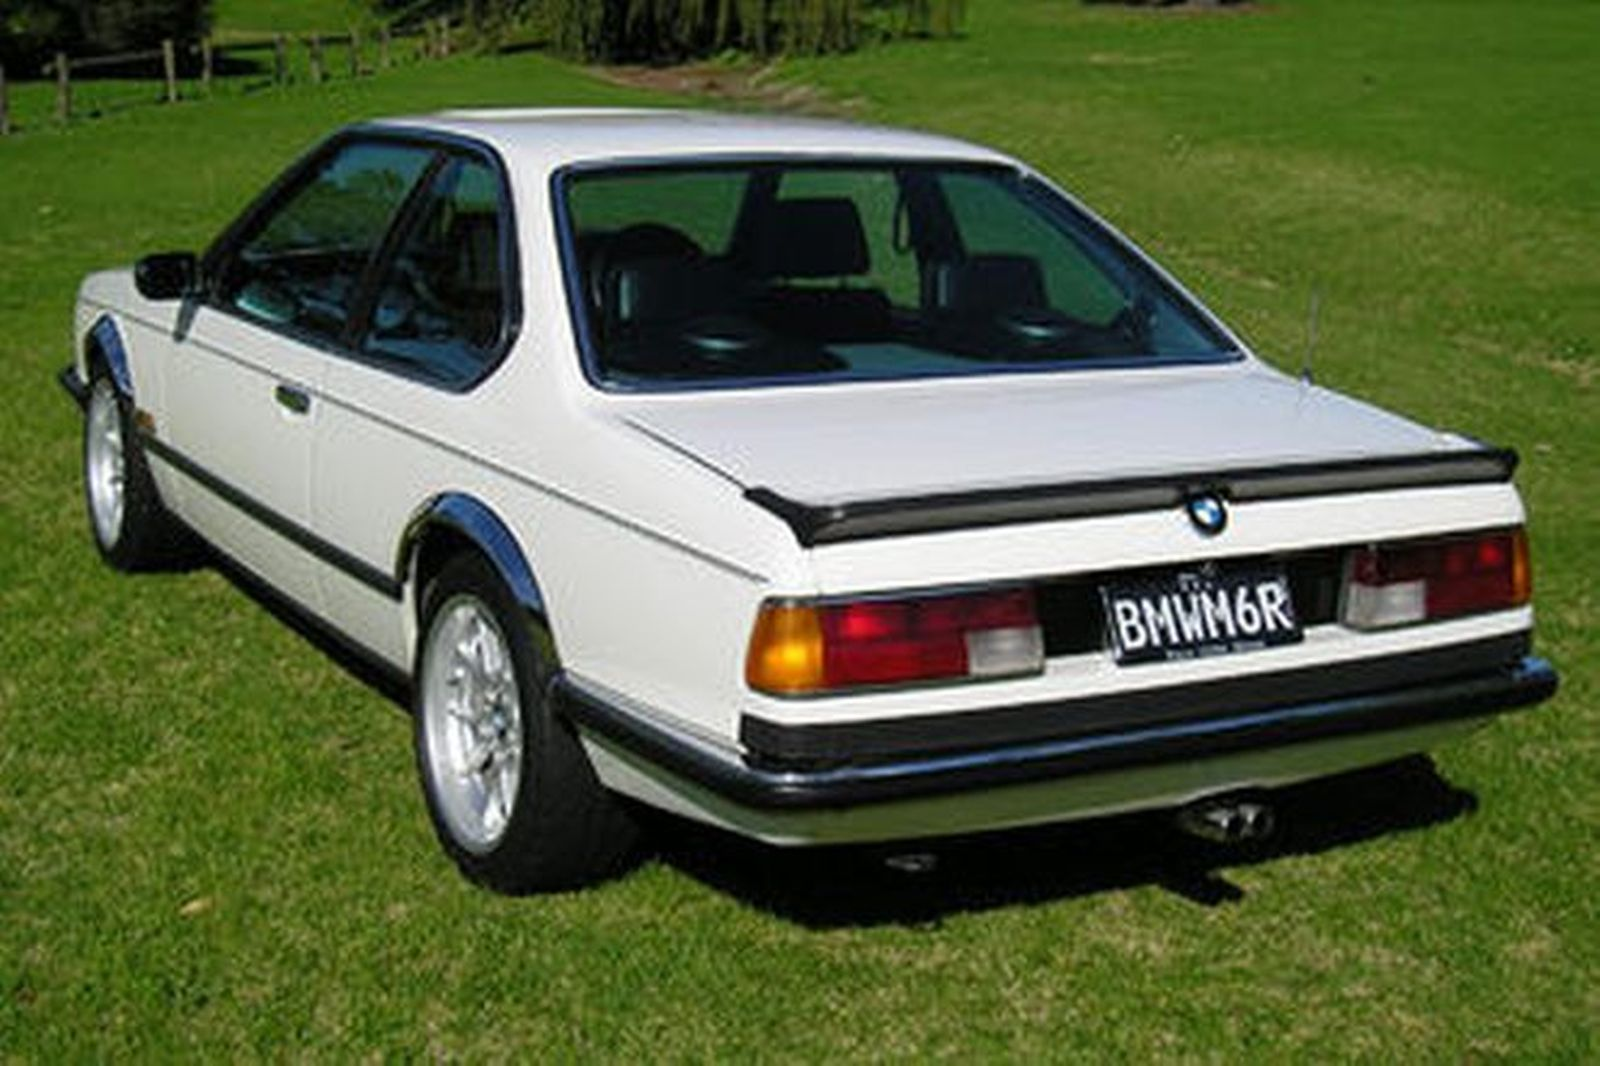 sold bmw 635 csi coupe auctions lot 22 shannons. Black Bedroom Furniture Sets. Home Design Ideas